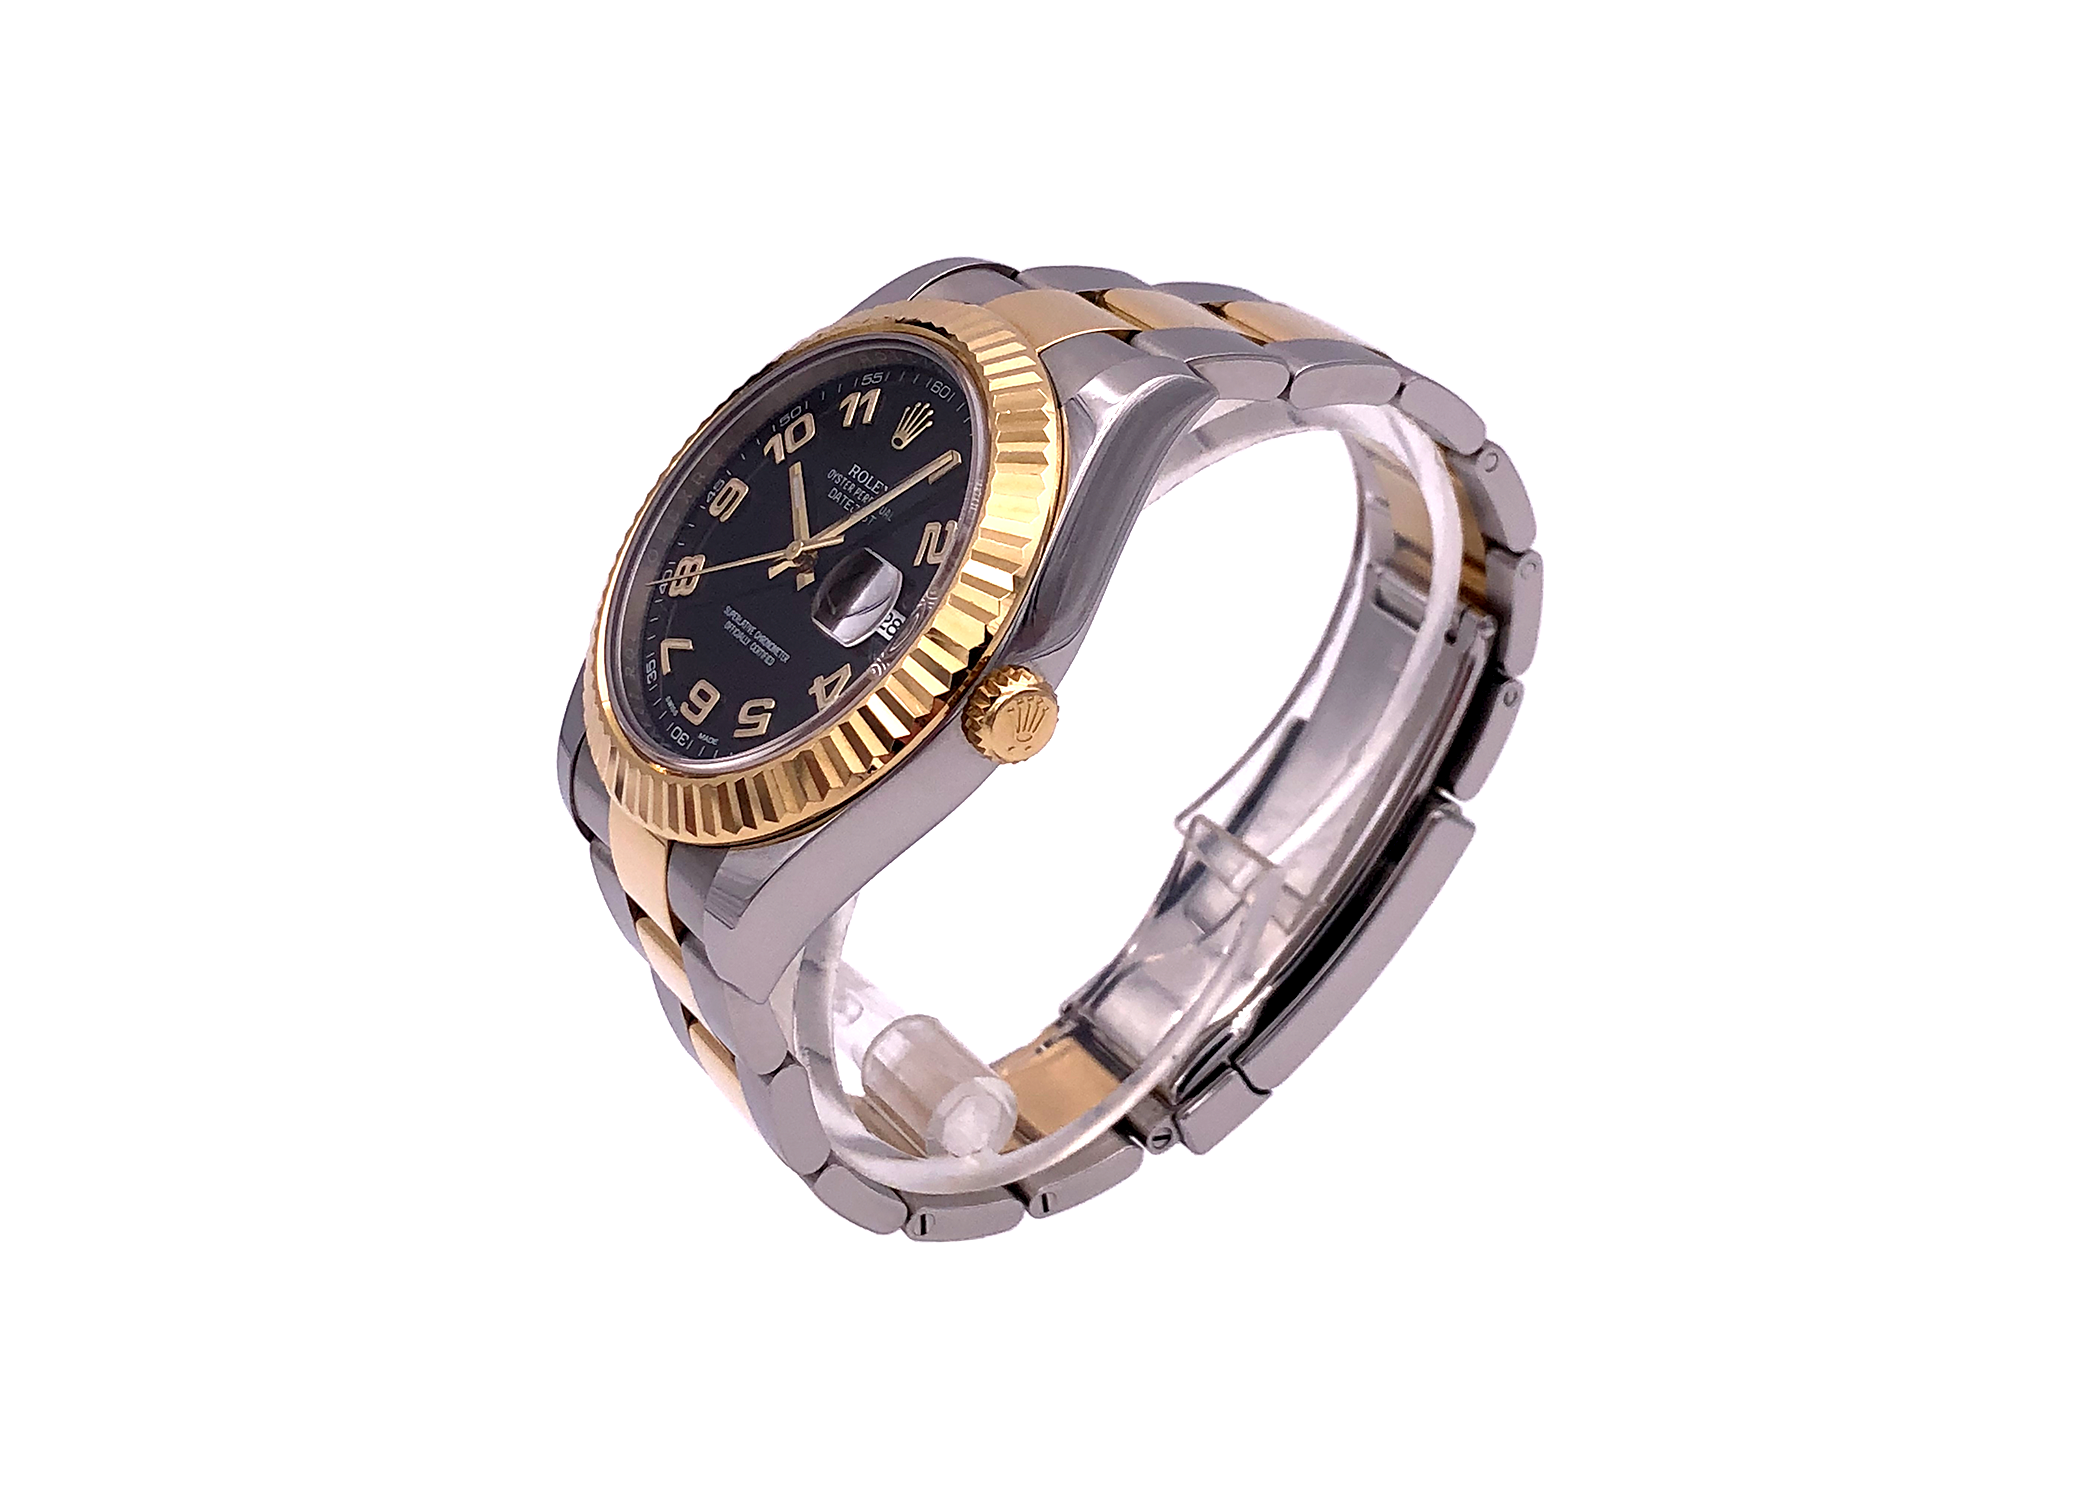 Rolex Datejust II Two Tone 18kt Yellow Gold/Stainless Steel – 116333